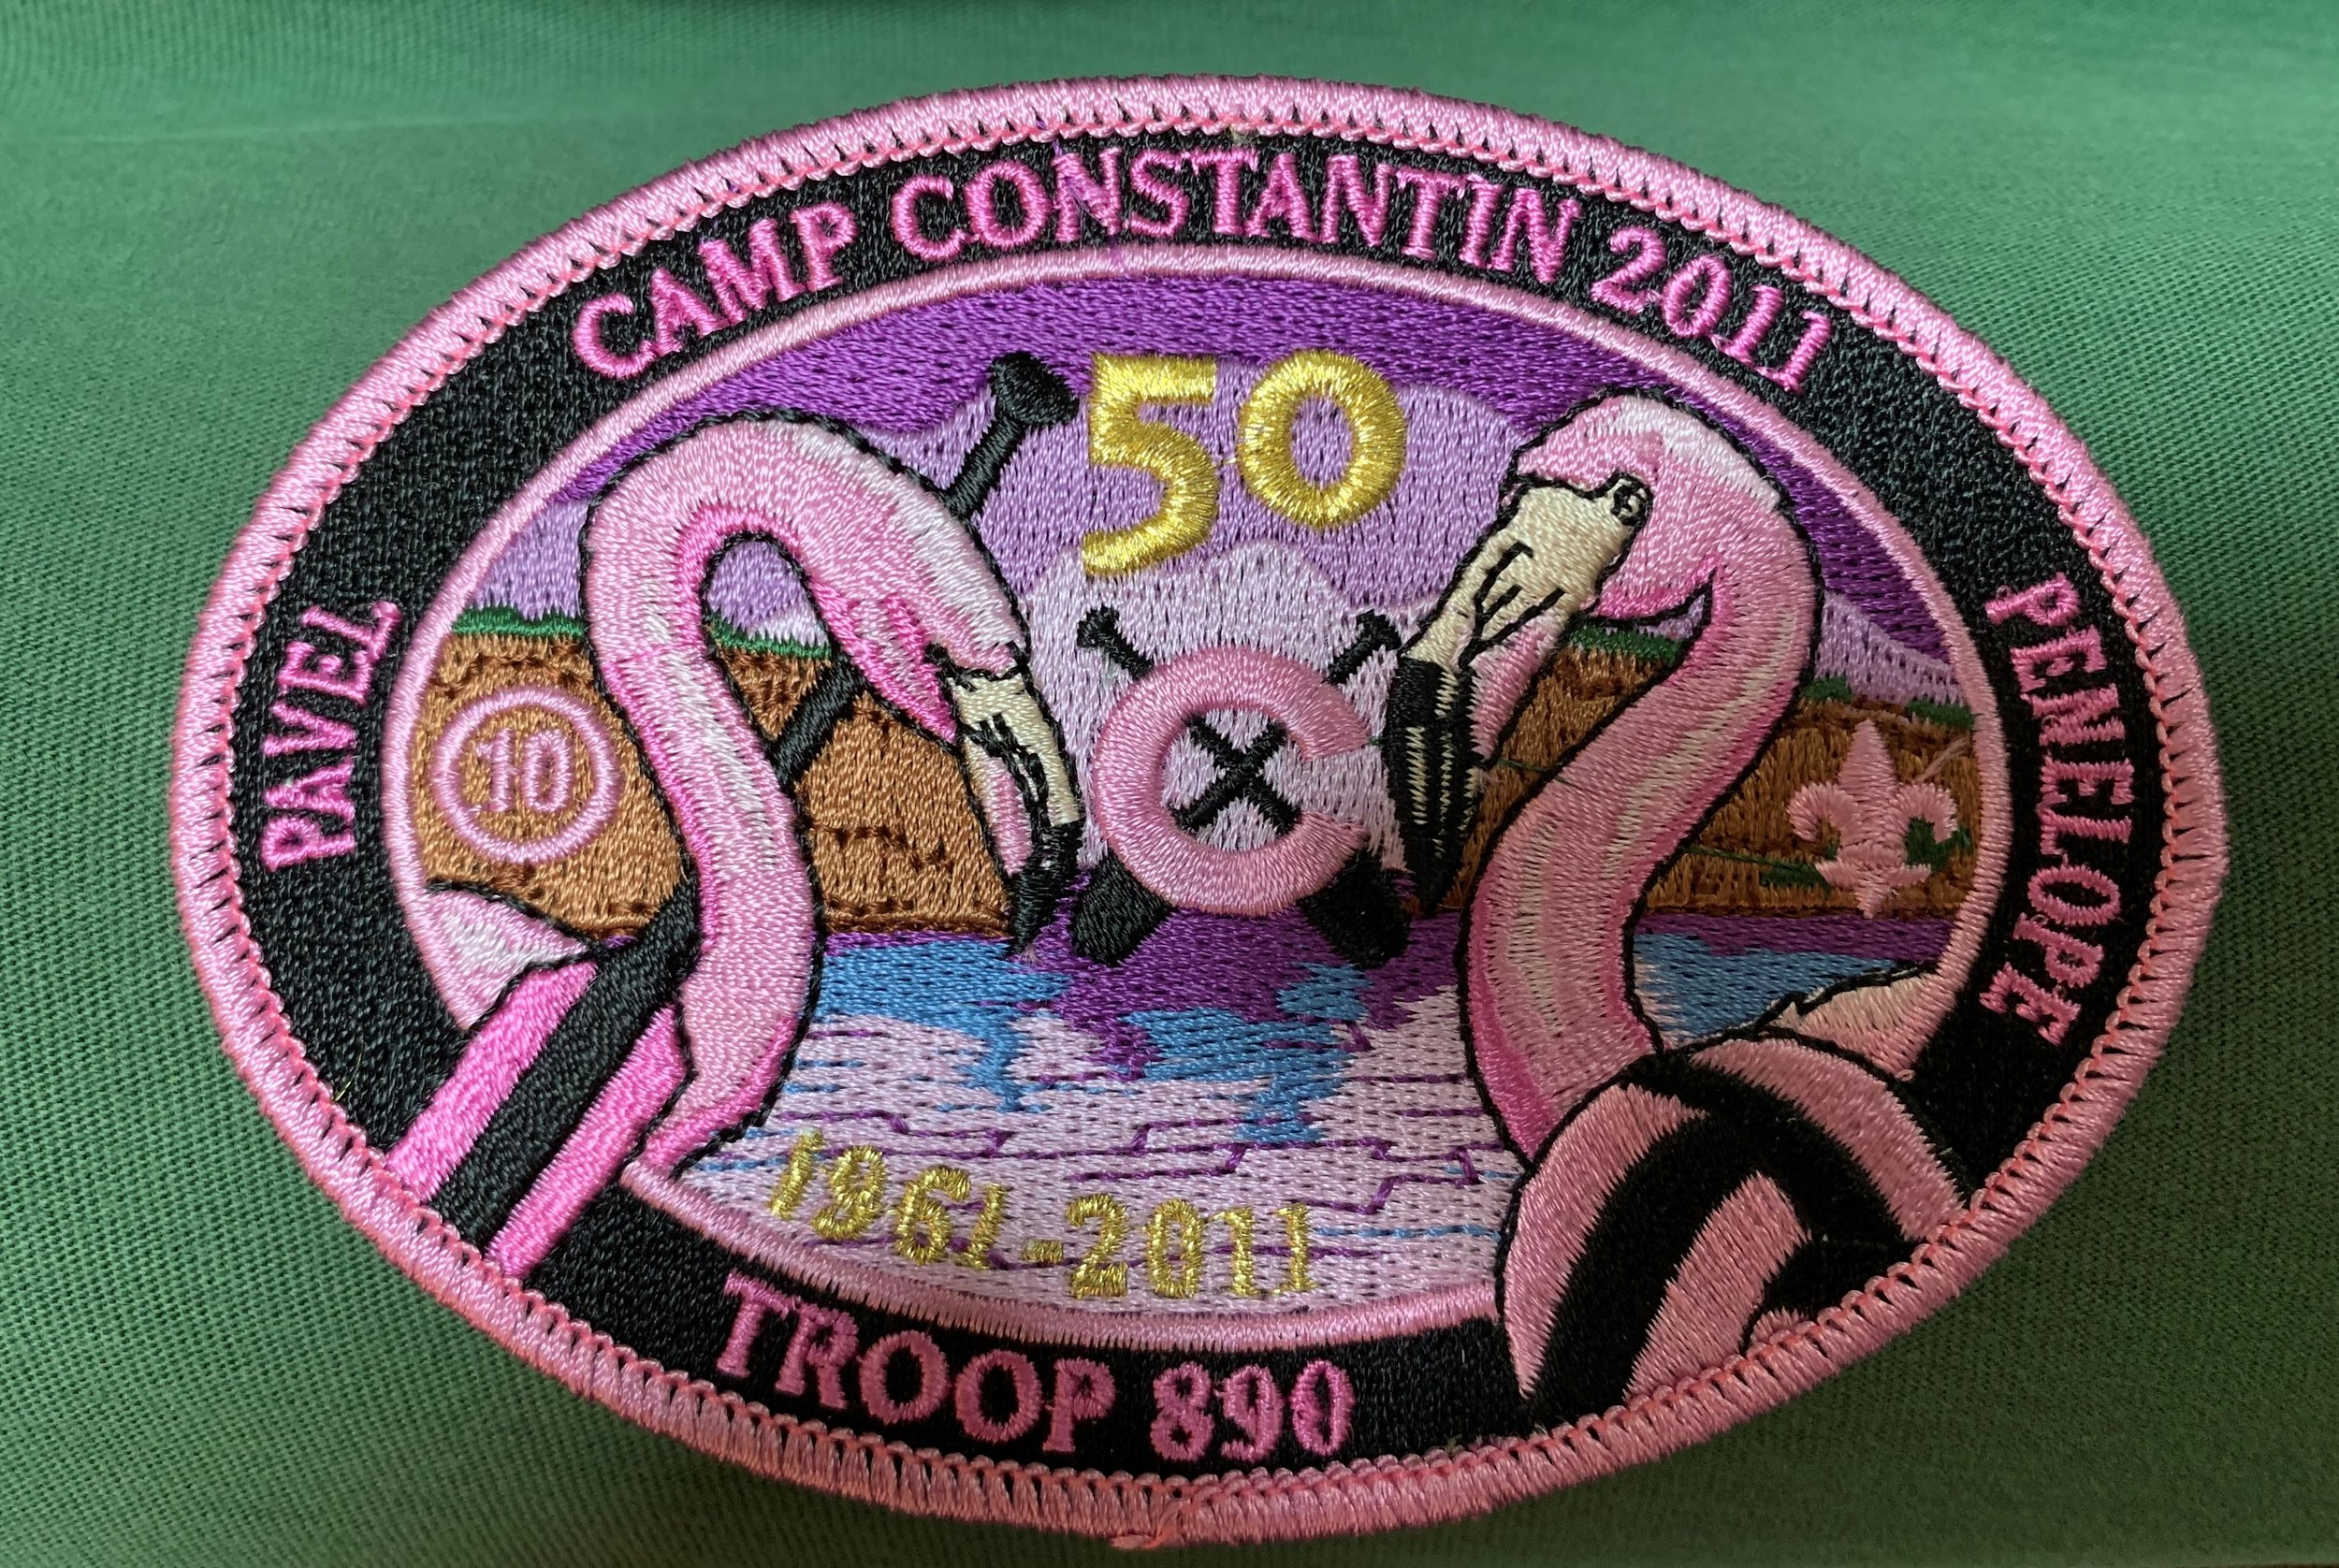 - 2011the first year with gold threading - also our Troop's 50th anniversary